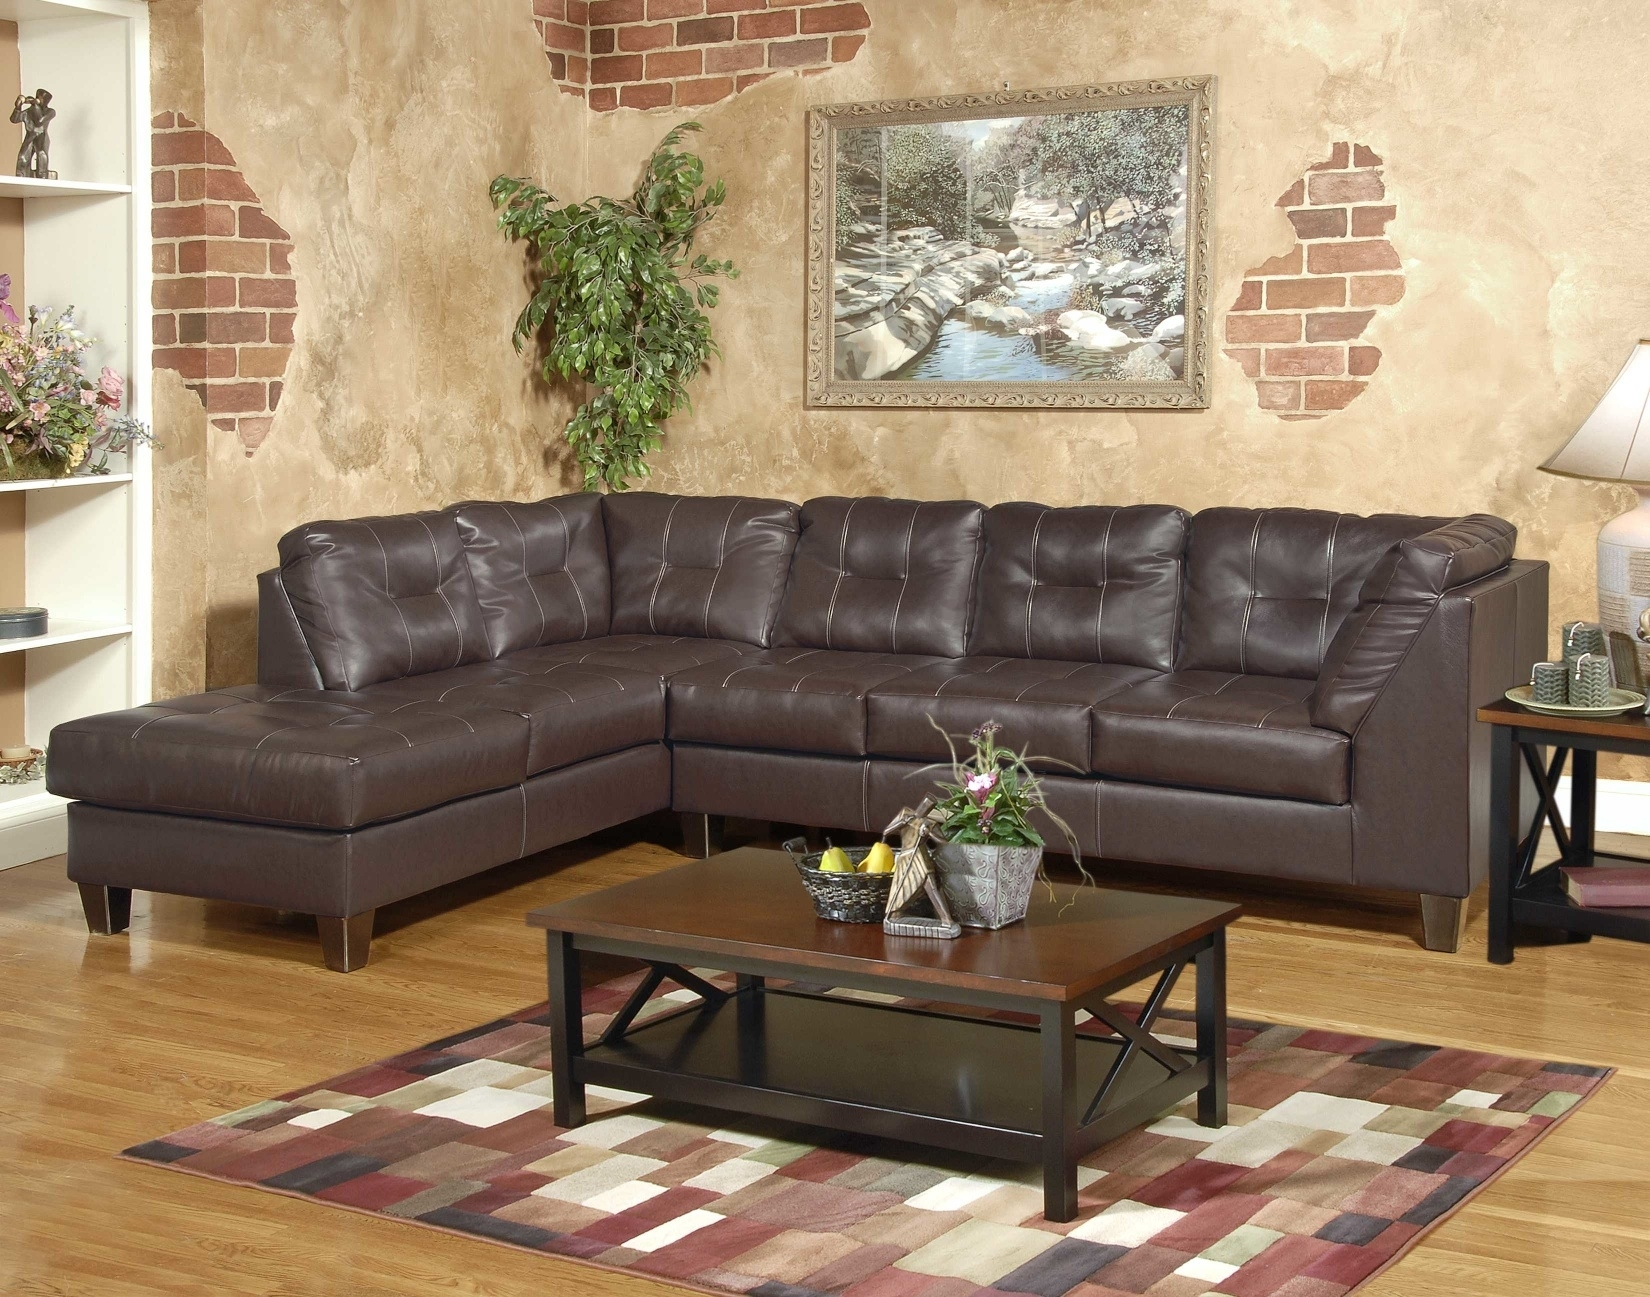 Discount Furniture And Mattresses – Tallahassee Furniture Direct In Tallahassee Sectional Sofas (Image 4 of 10)